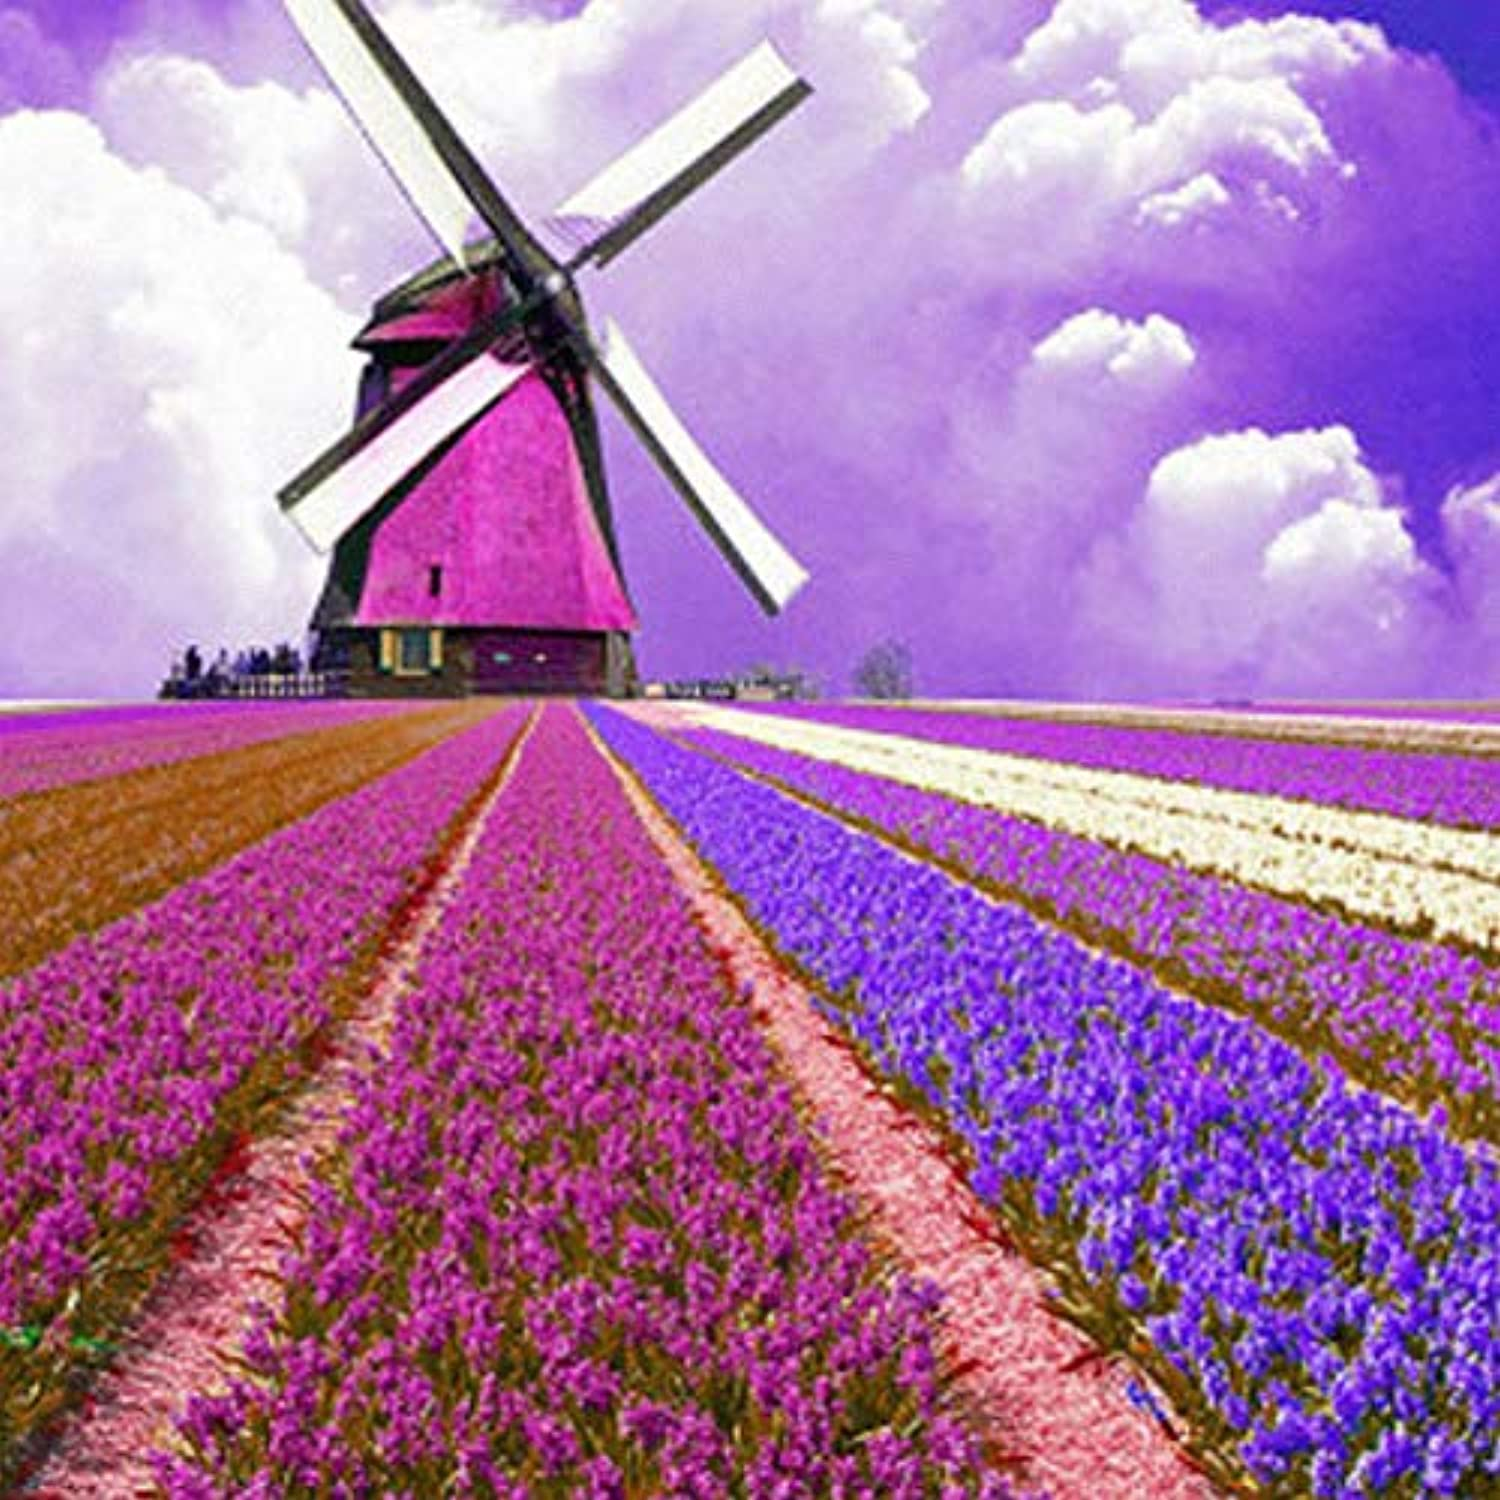 Paint By Digital Kit For Kids And Adults With Frame, Diy Oil Painting -colord Lavender Flowers Windmill, Gift 16''X20'' Inch